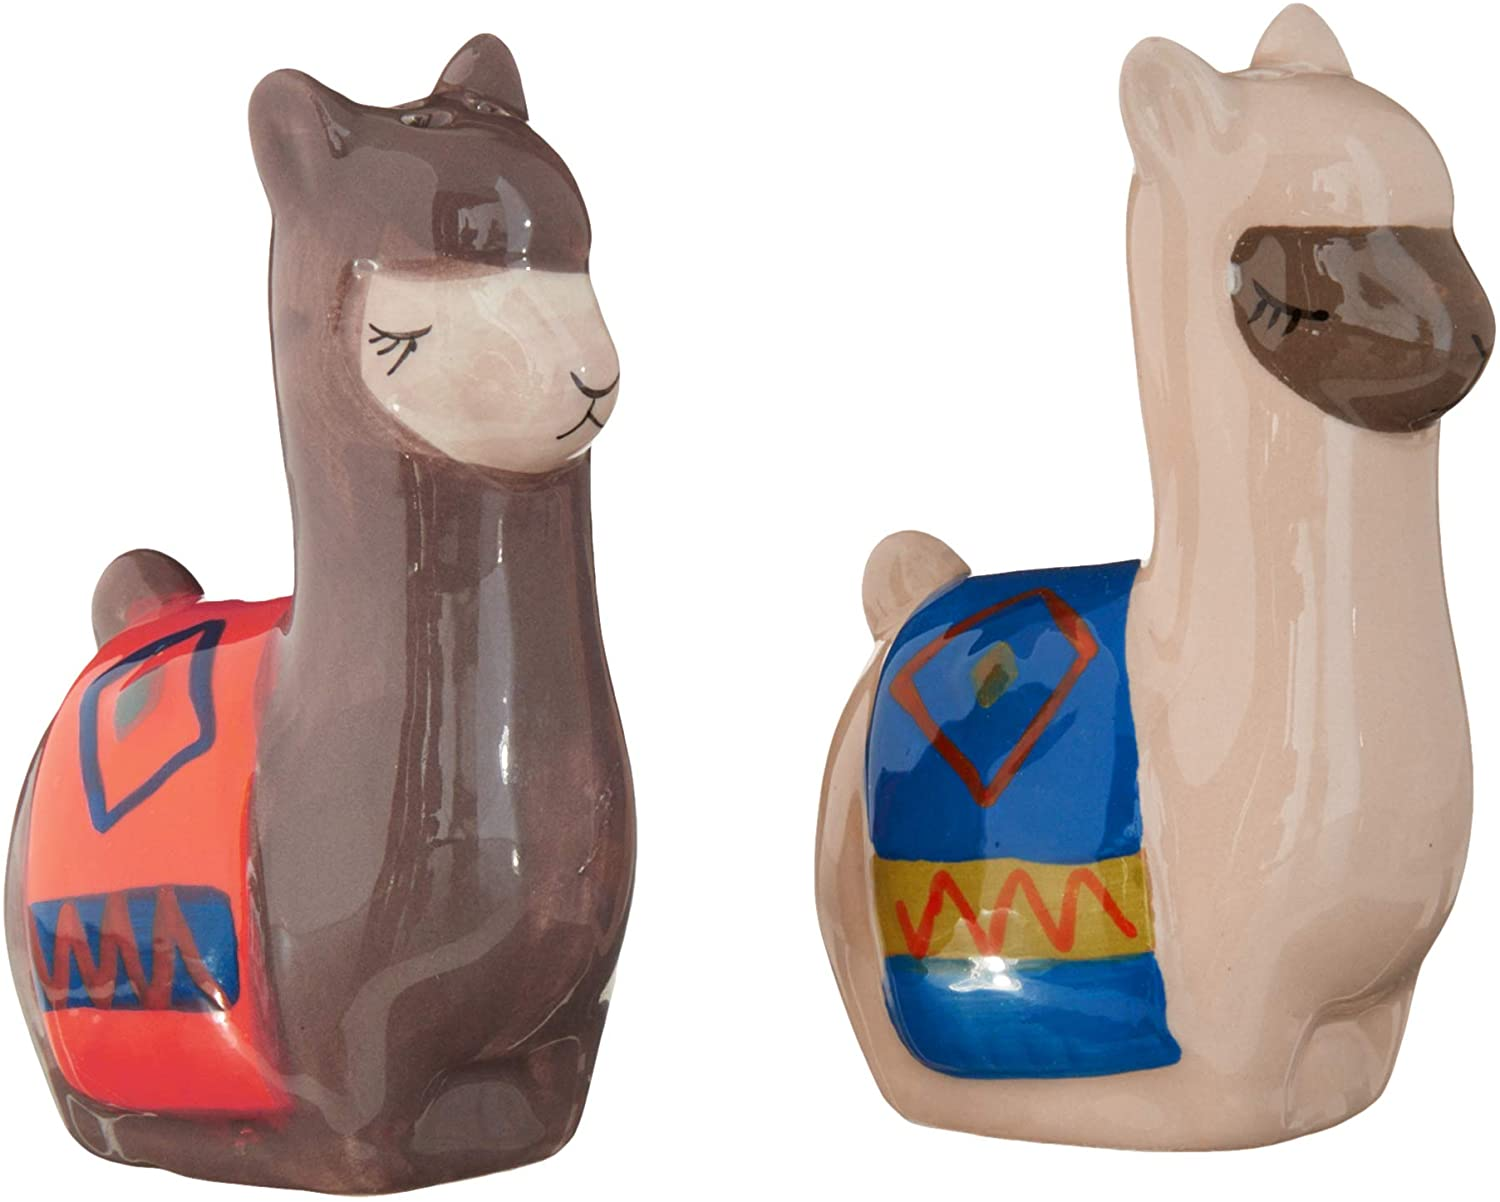 llama-gifts-salt-and-pepper-shakers